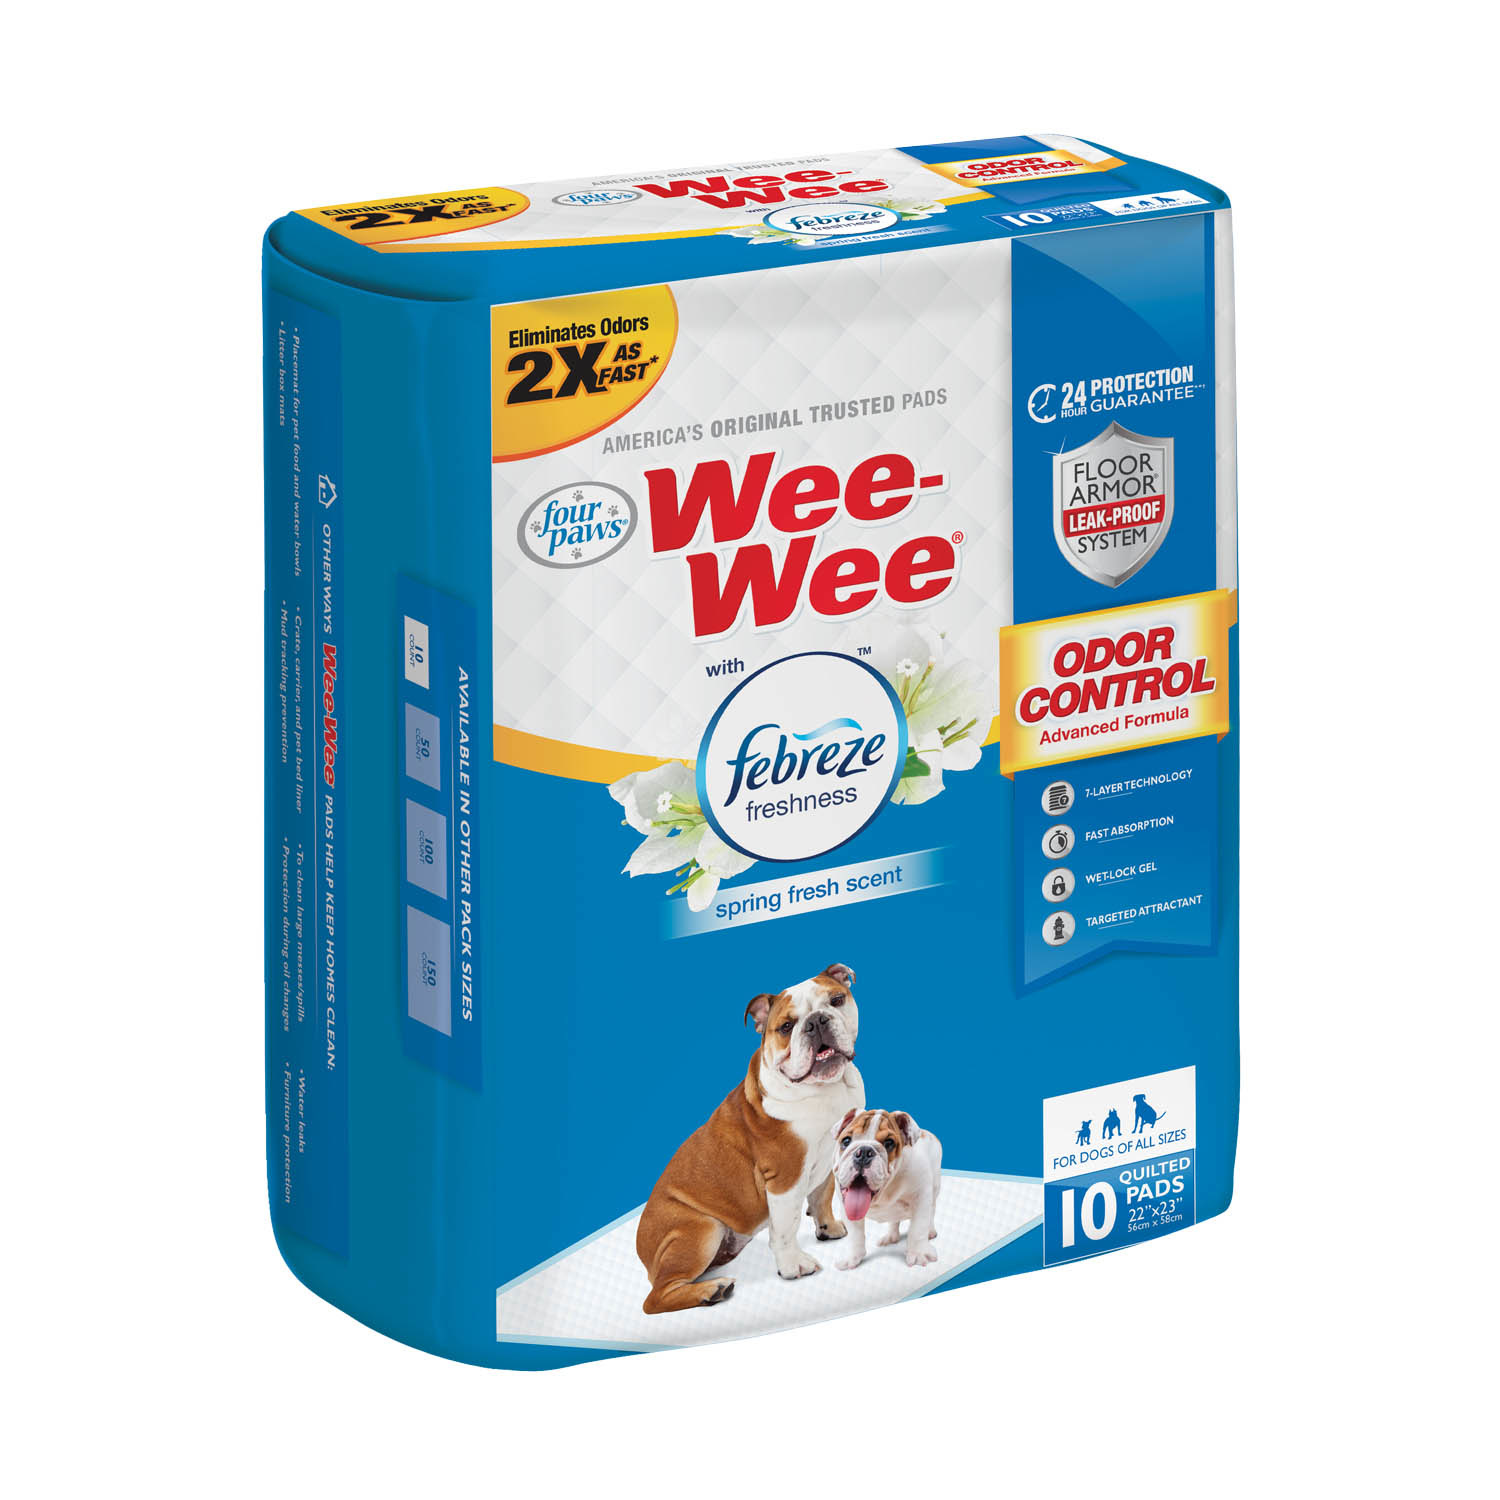 Four Paws Four Paws Wee Wee Training Pads Odor Control with Febreze Freshness